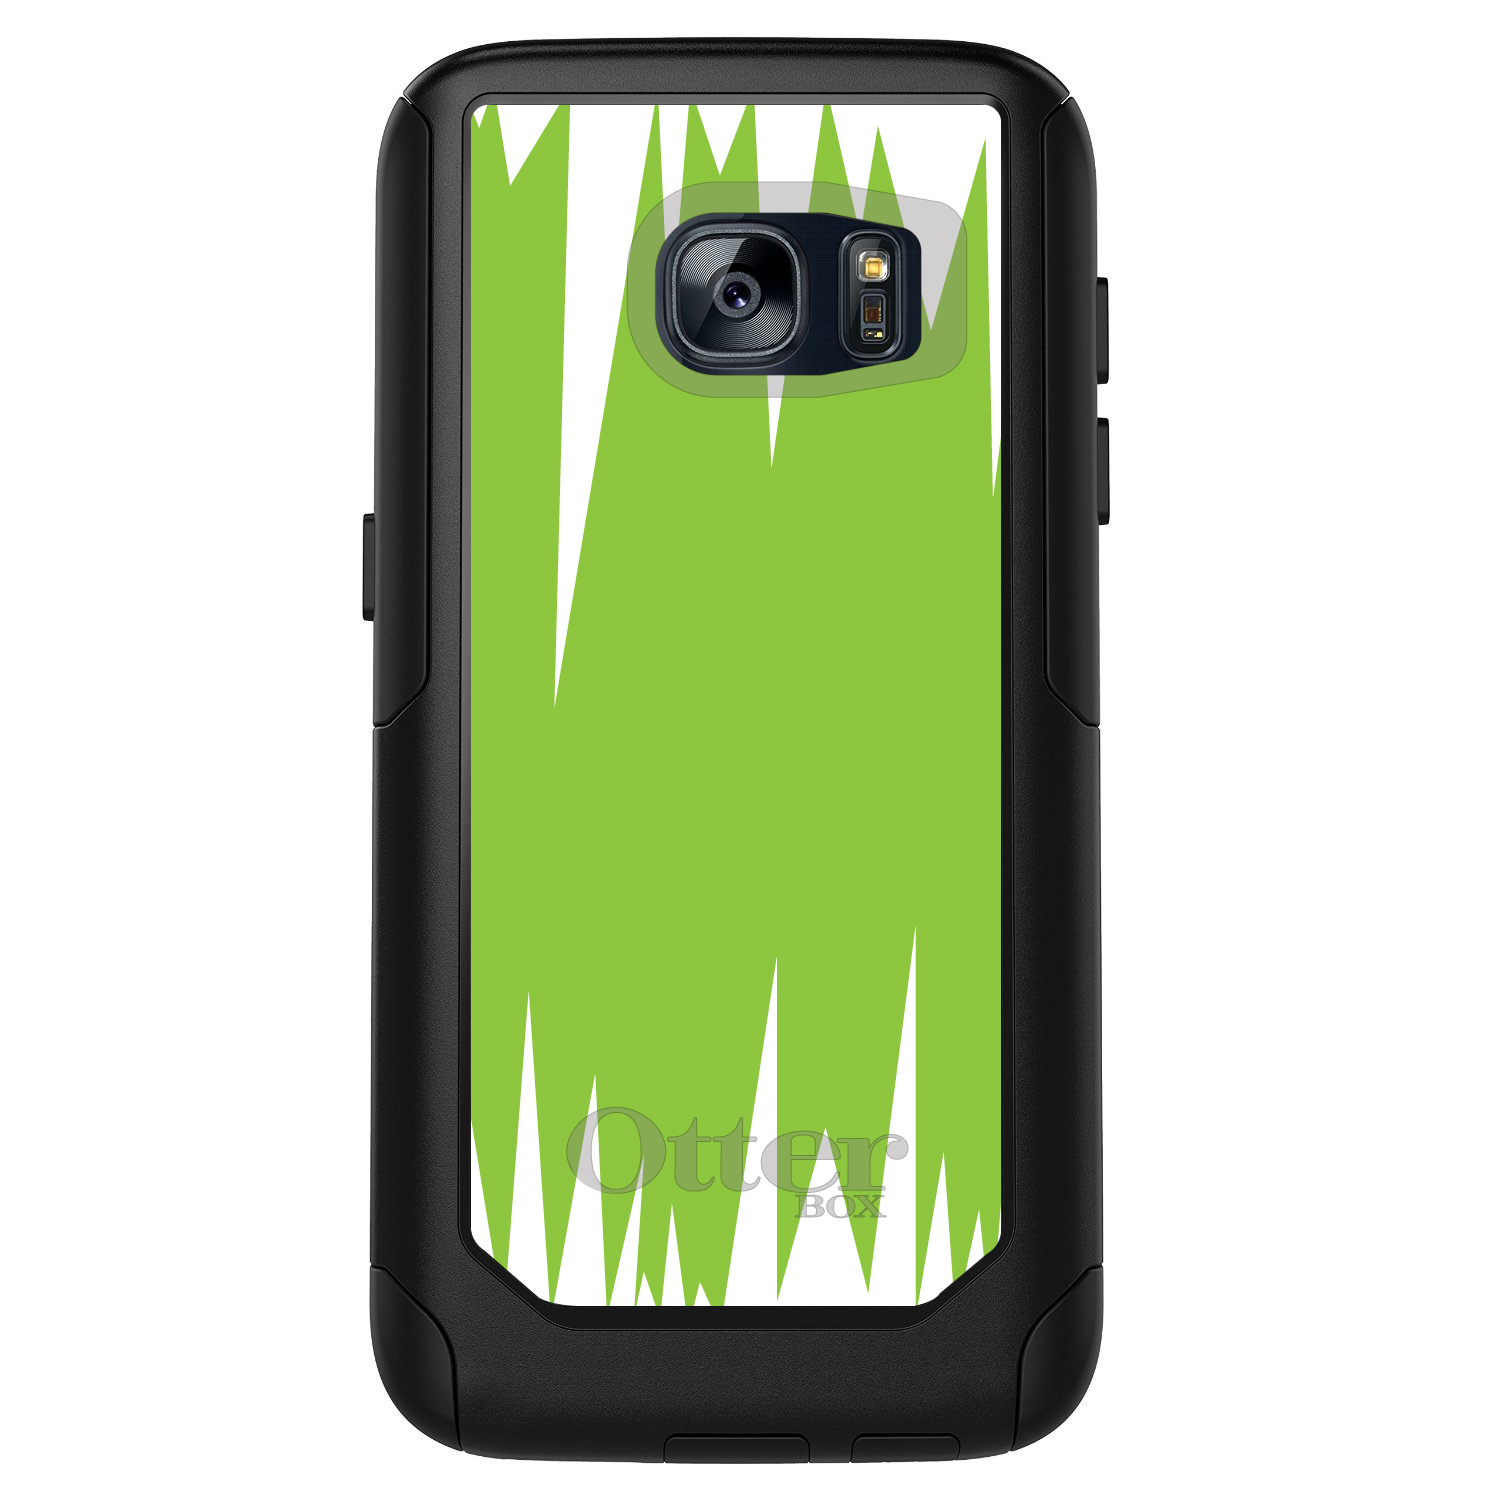 DistinctInk™ Custom Black OtterBox Commuter Series Case for Samsung Galaxy S7 - Lime Green White Spikes